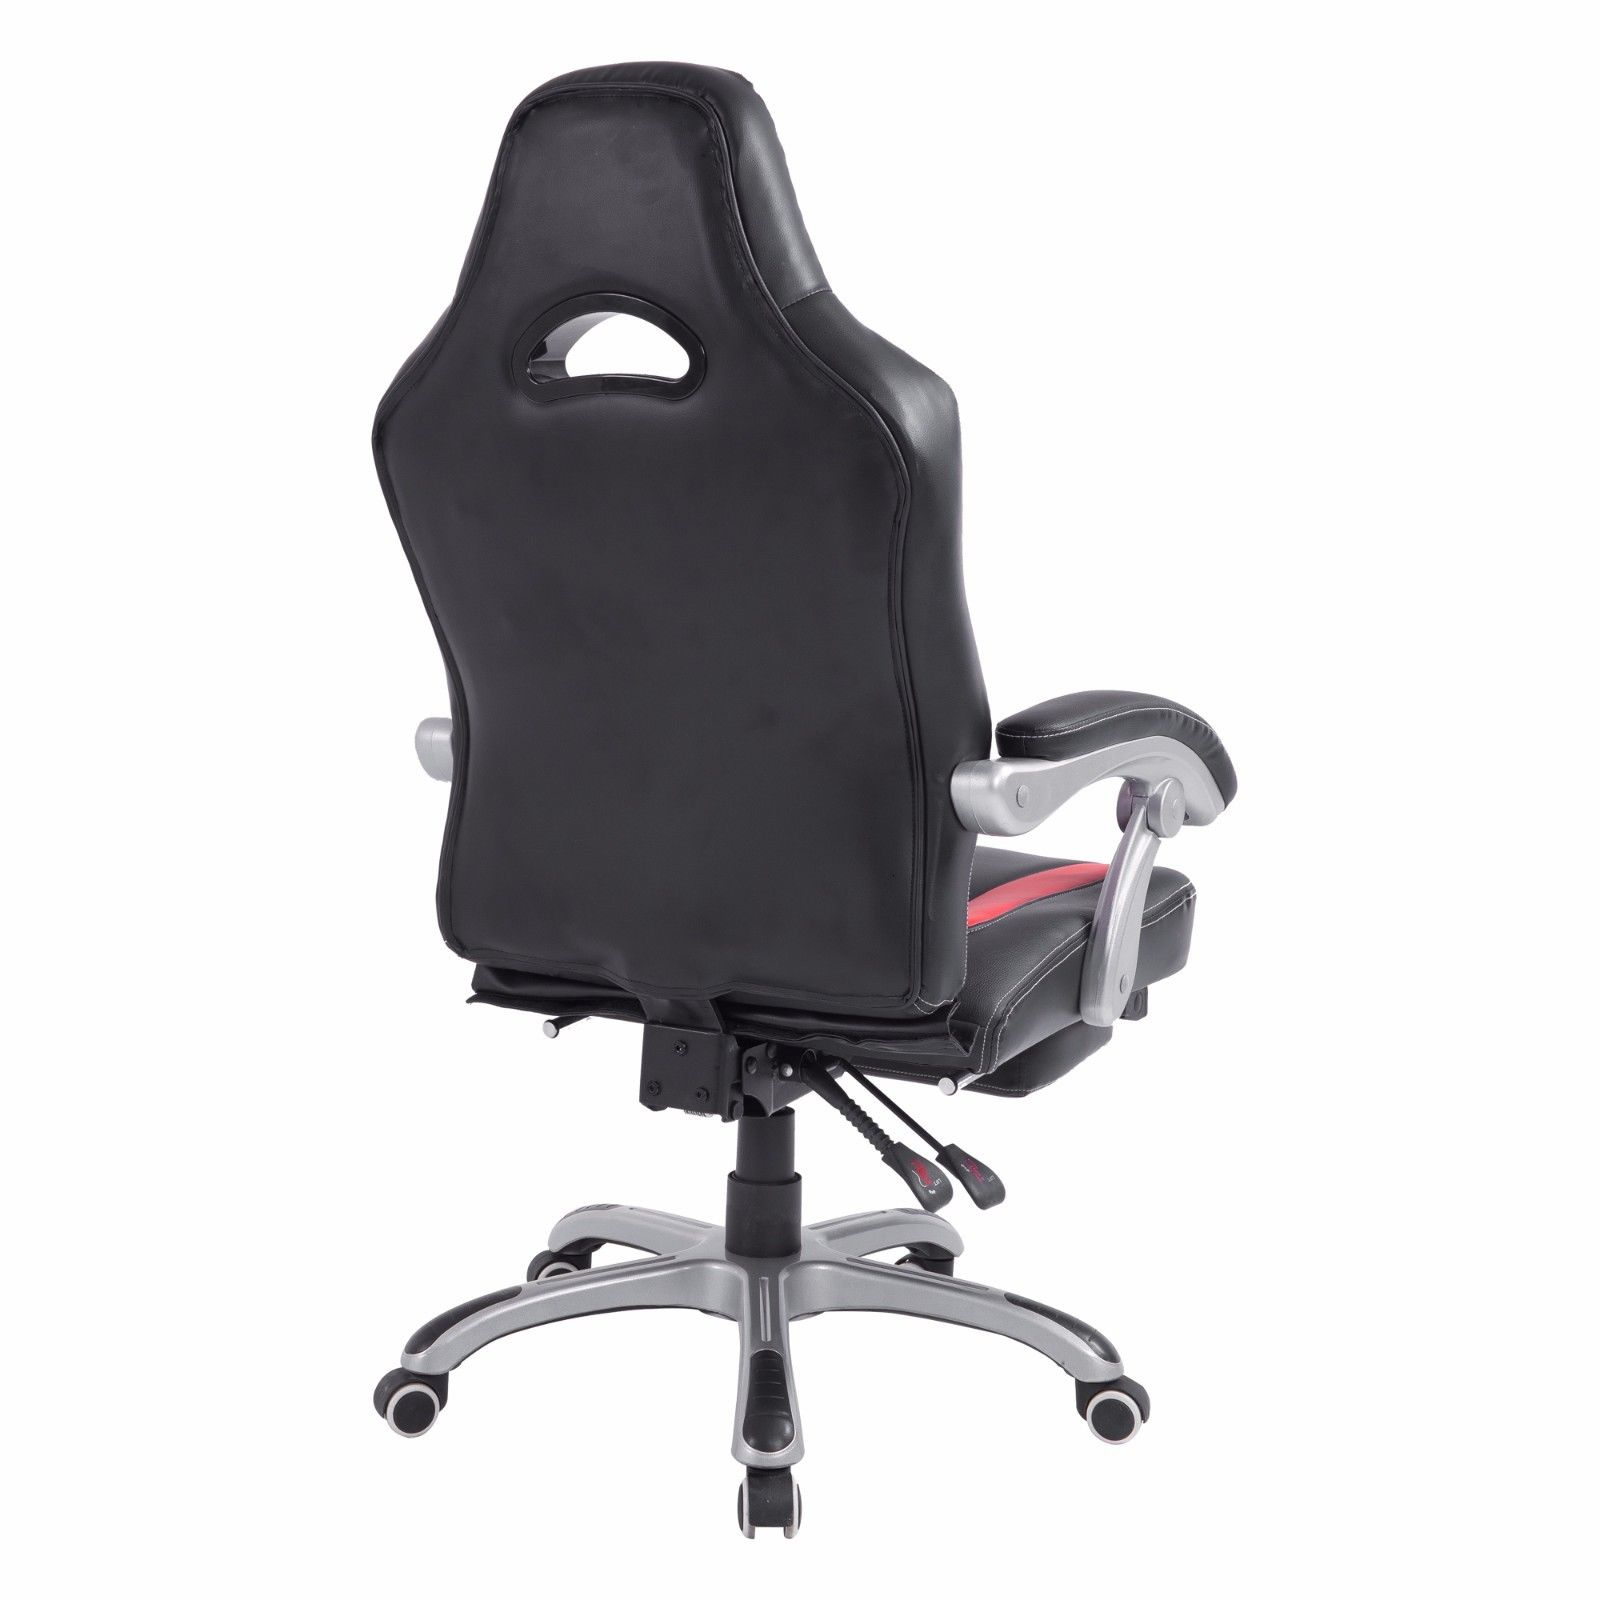 Reclining Office Chair Executive Computer PU Leather Desk